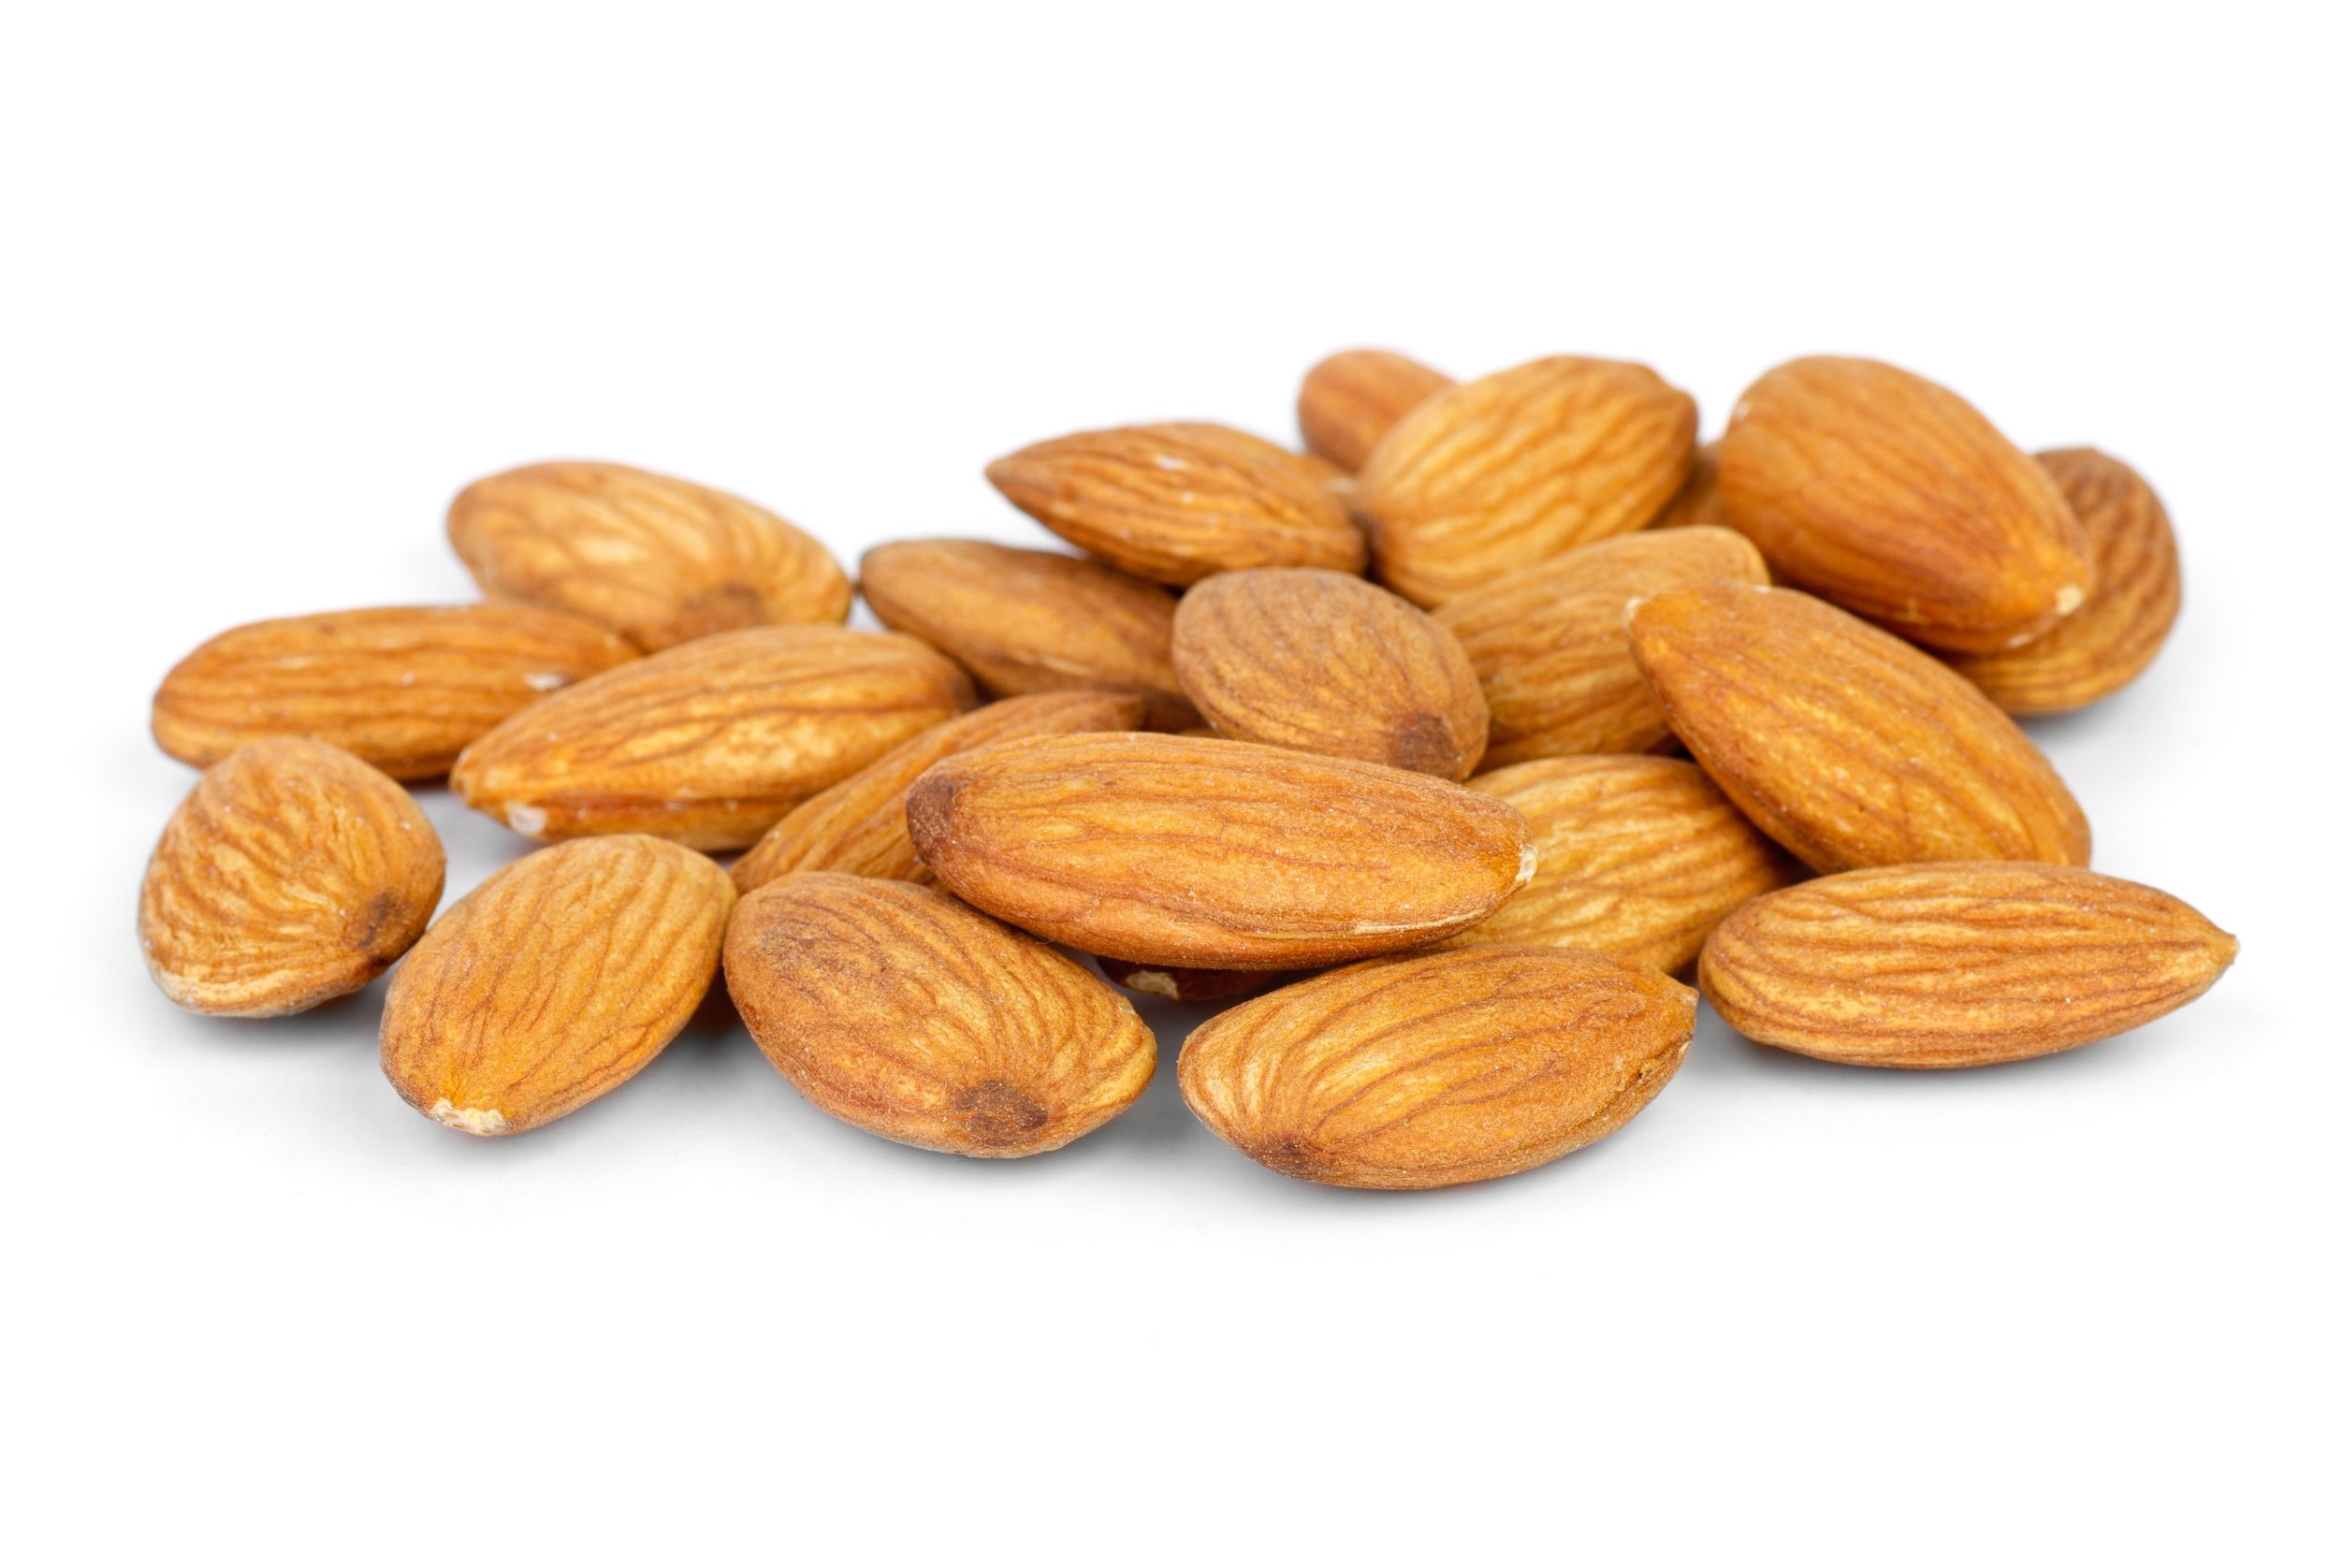 Youtube to mp3 downloads free, what are type 1 diabetes ... Almonds And Diabetes